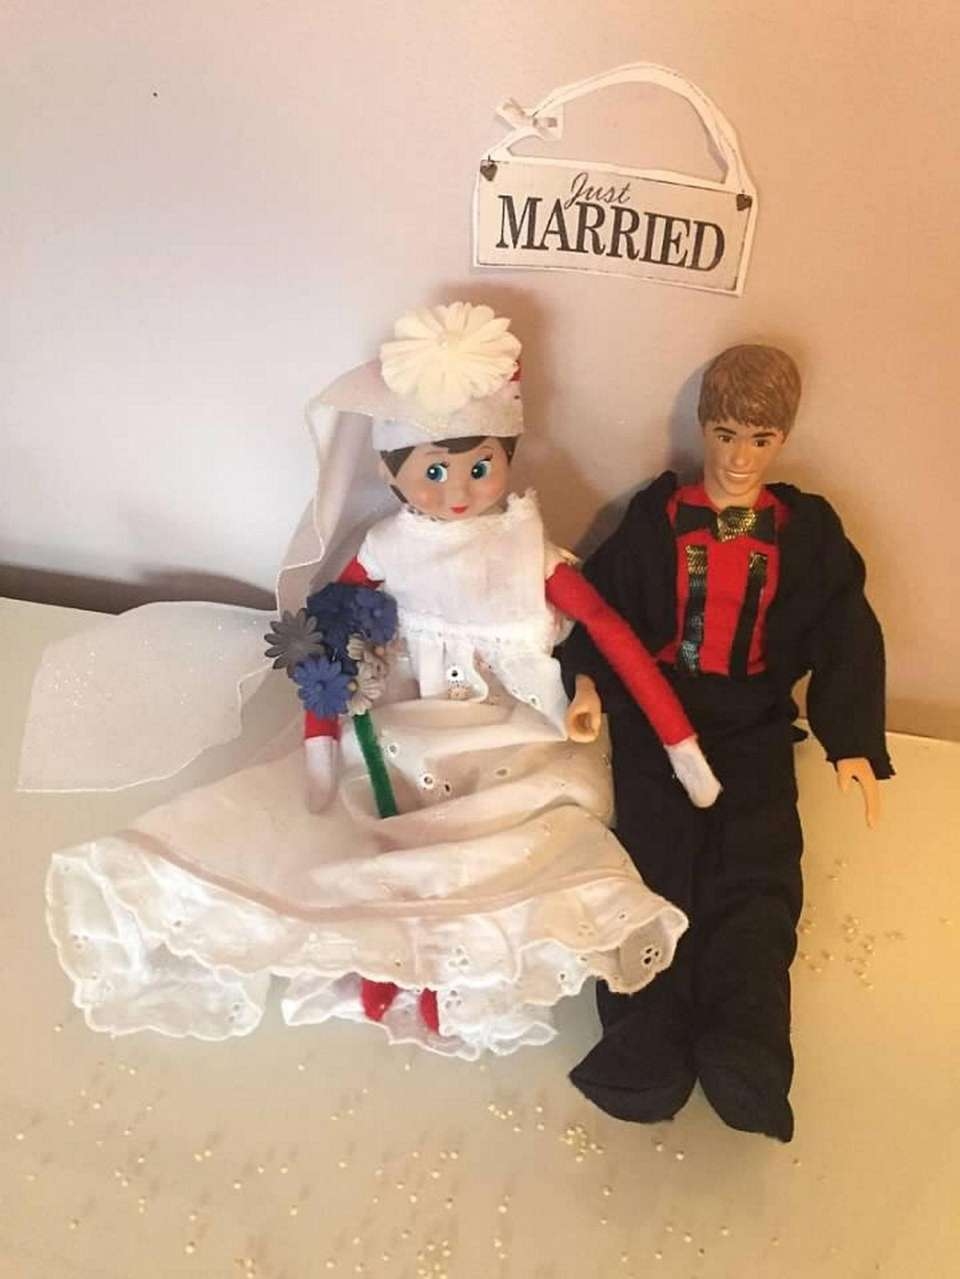 Elf on the shelf marrying Justin Bieber